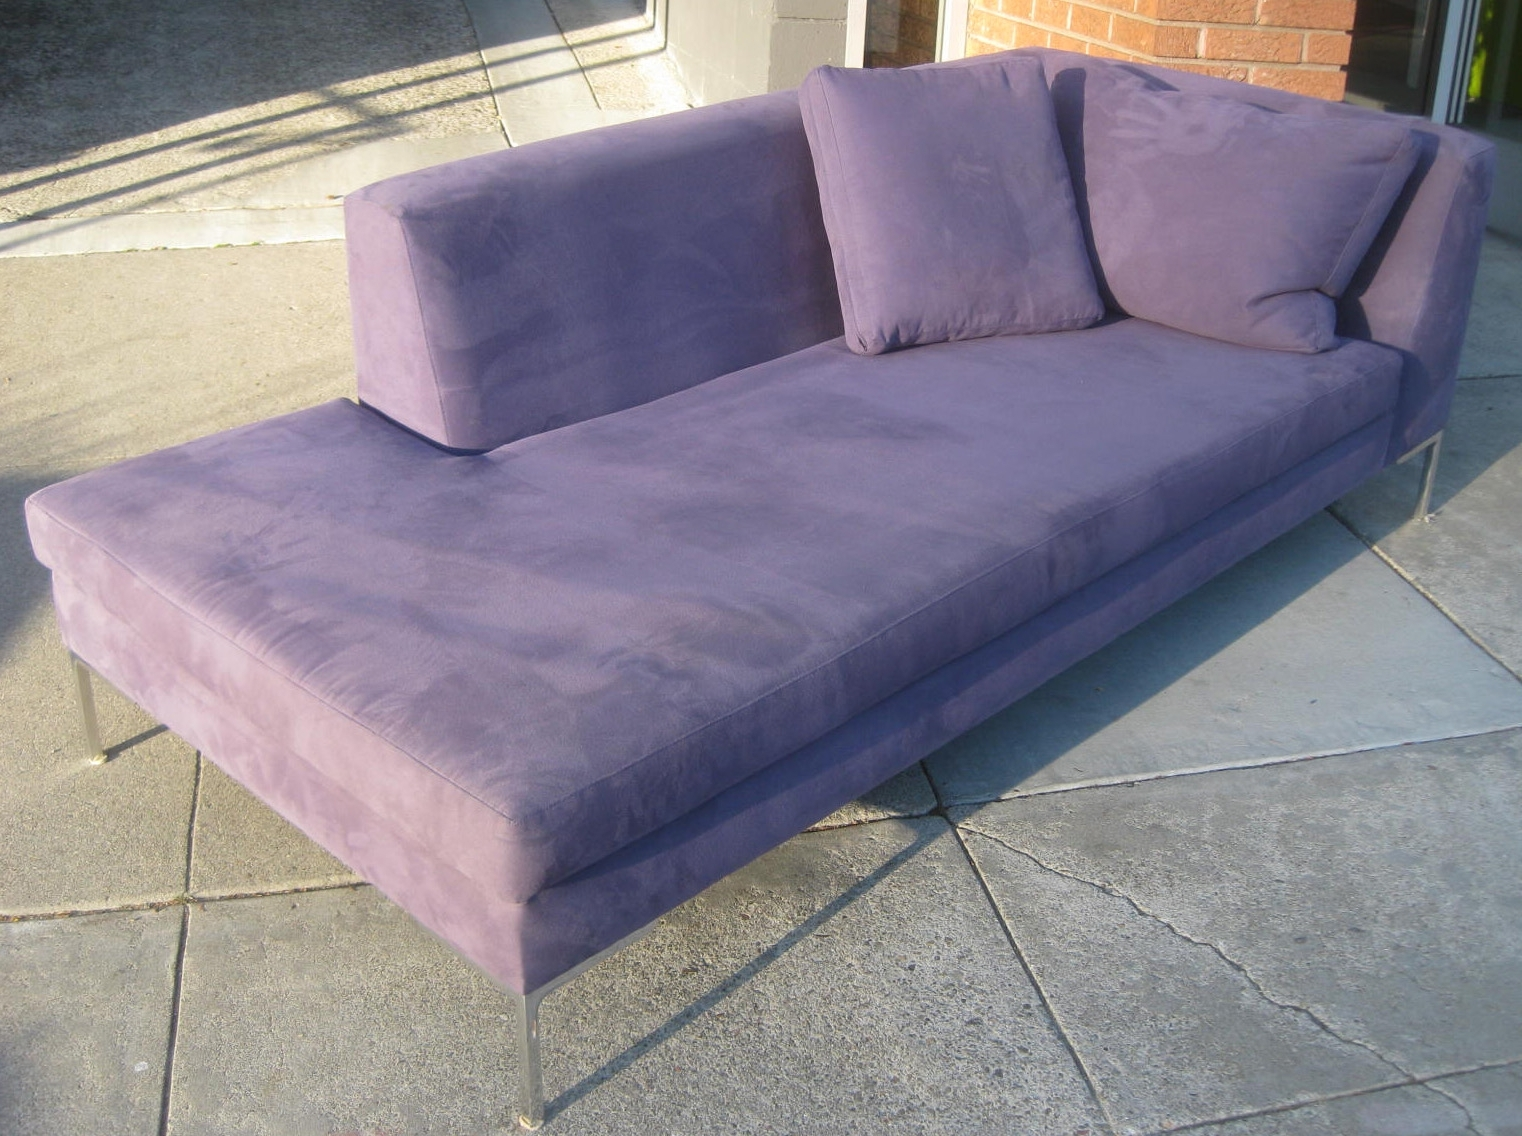 Latest Uhuru Furniture & Collectibles: Sold  Purple Chaise Lounge + With Regard To Purple Chaise Lounges (View 6 of 15)